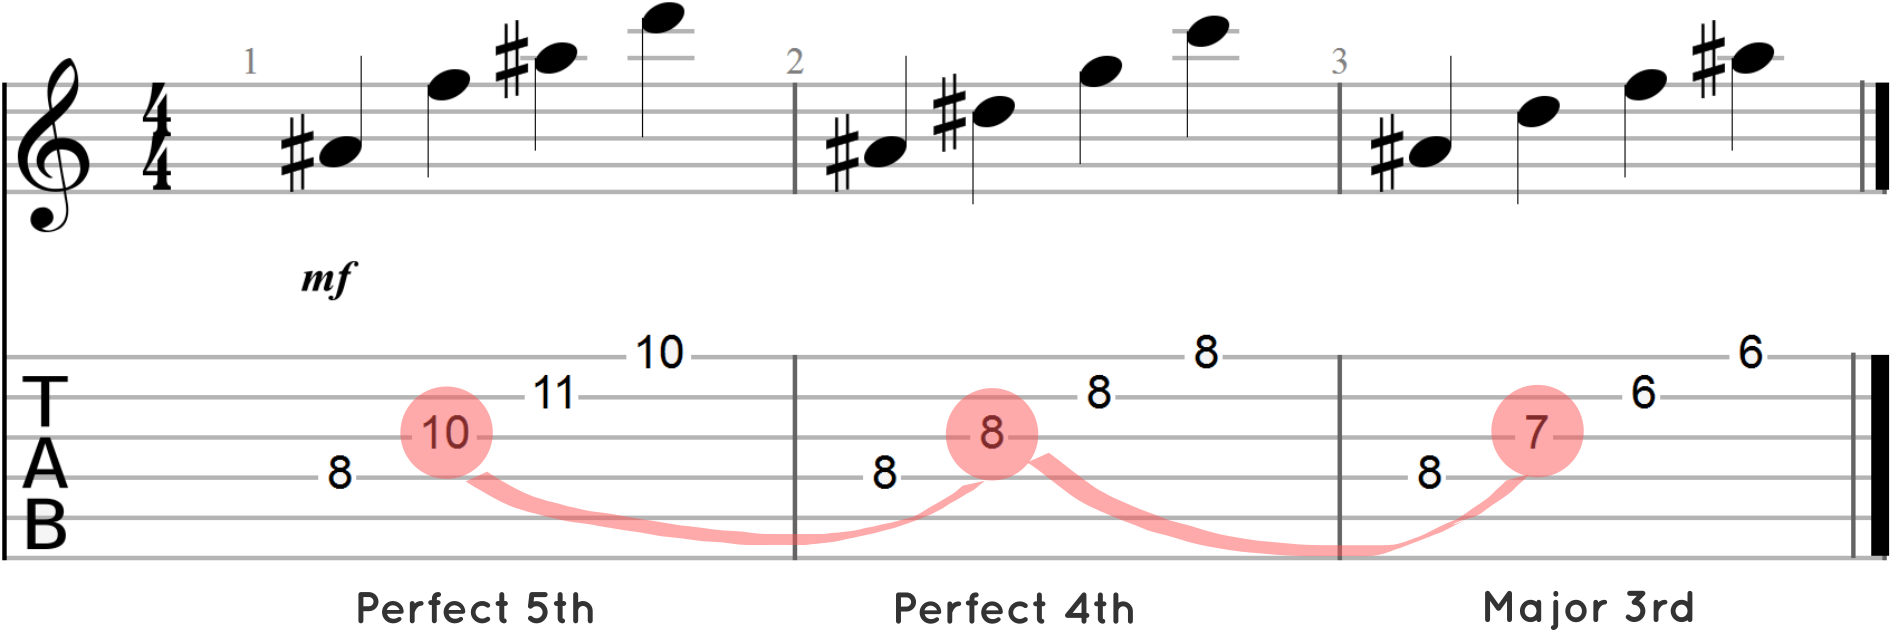 Arpeggiated Chord Progressioin with Shifting Intervals